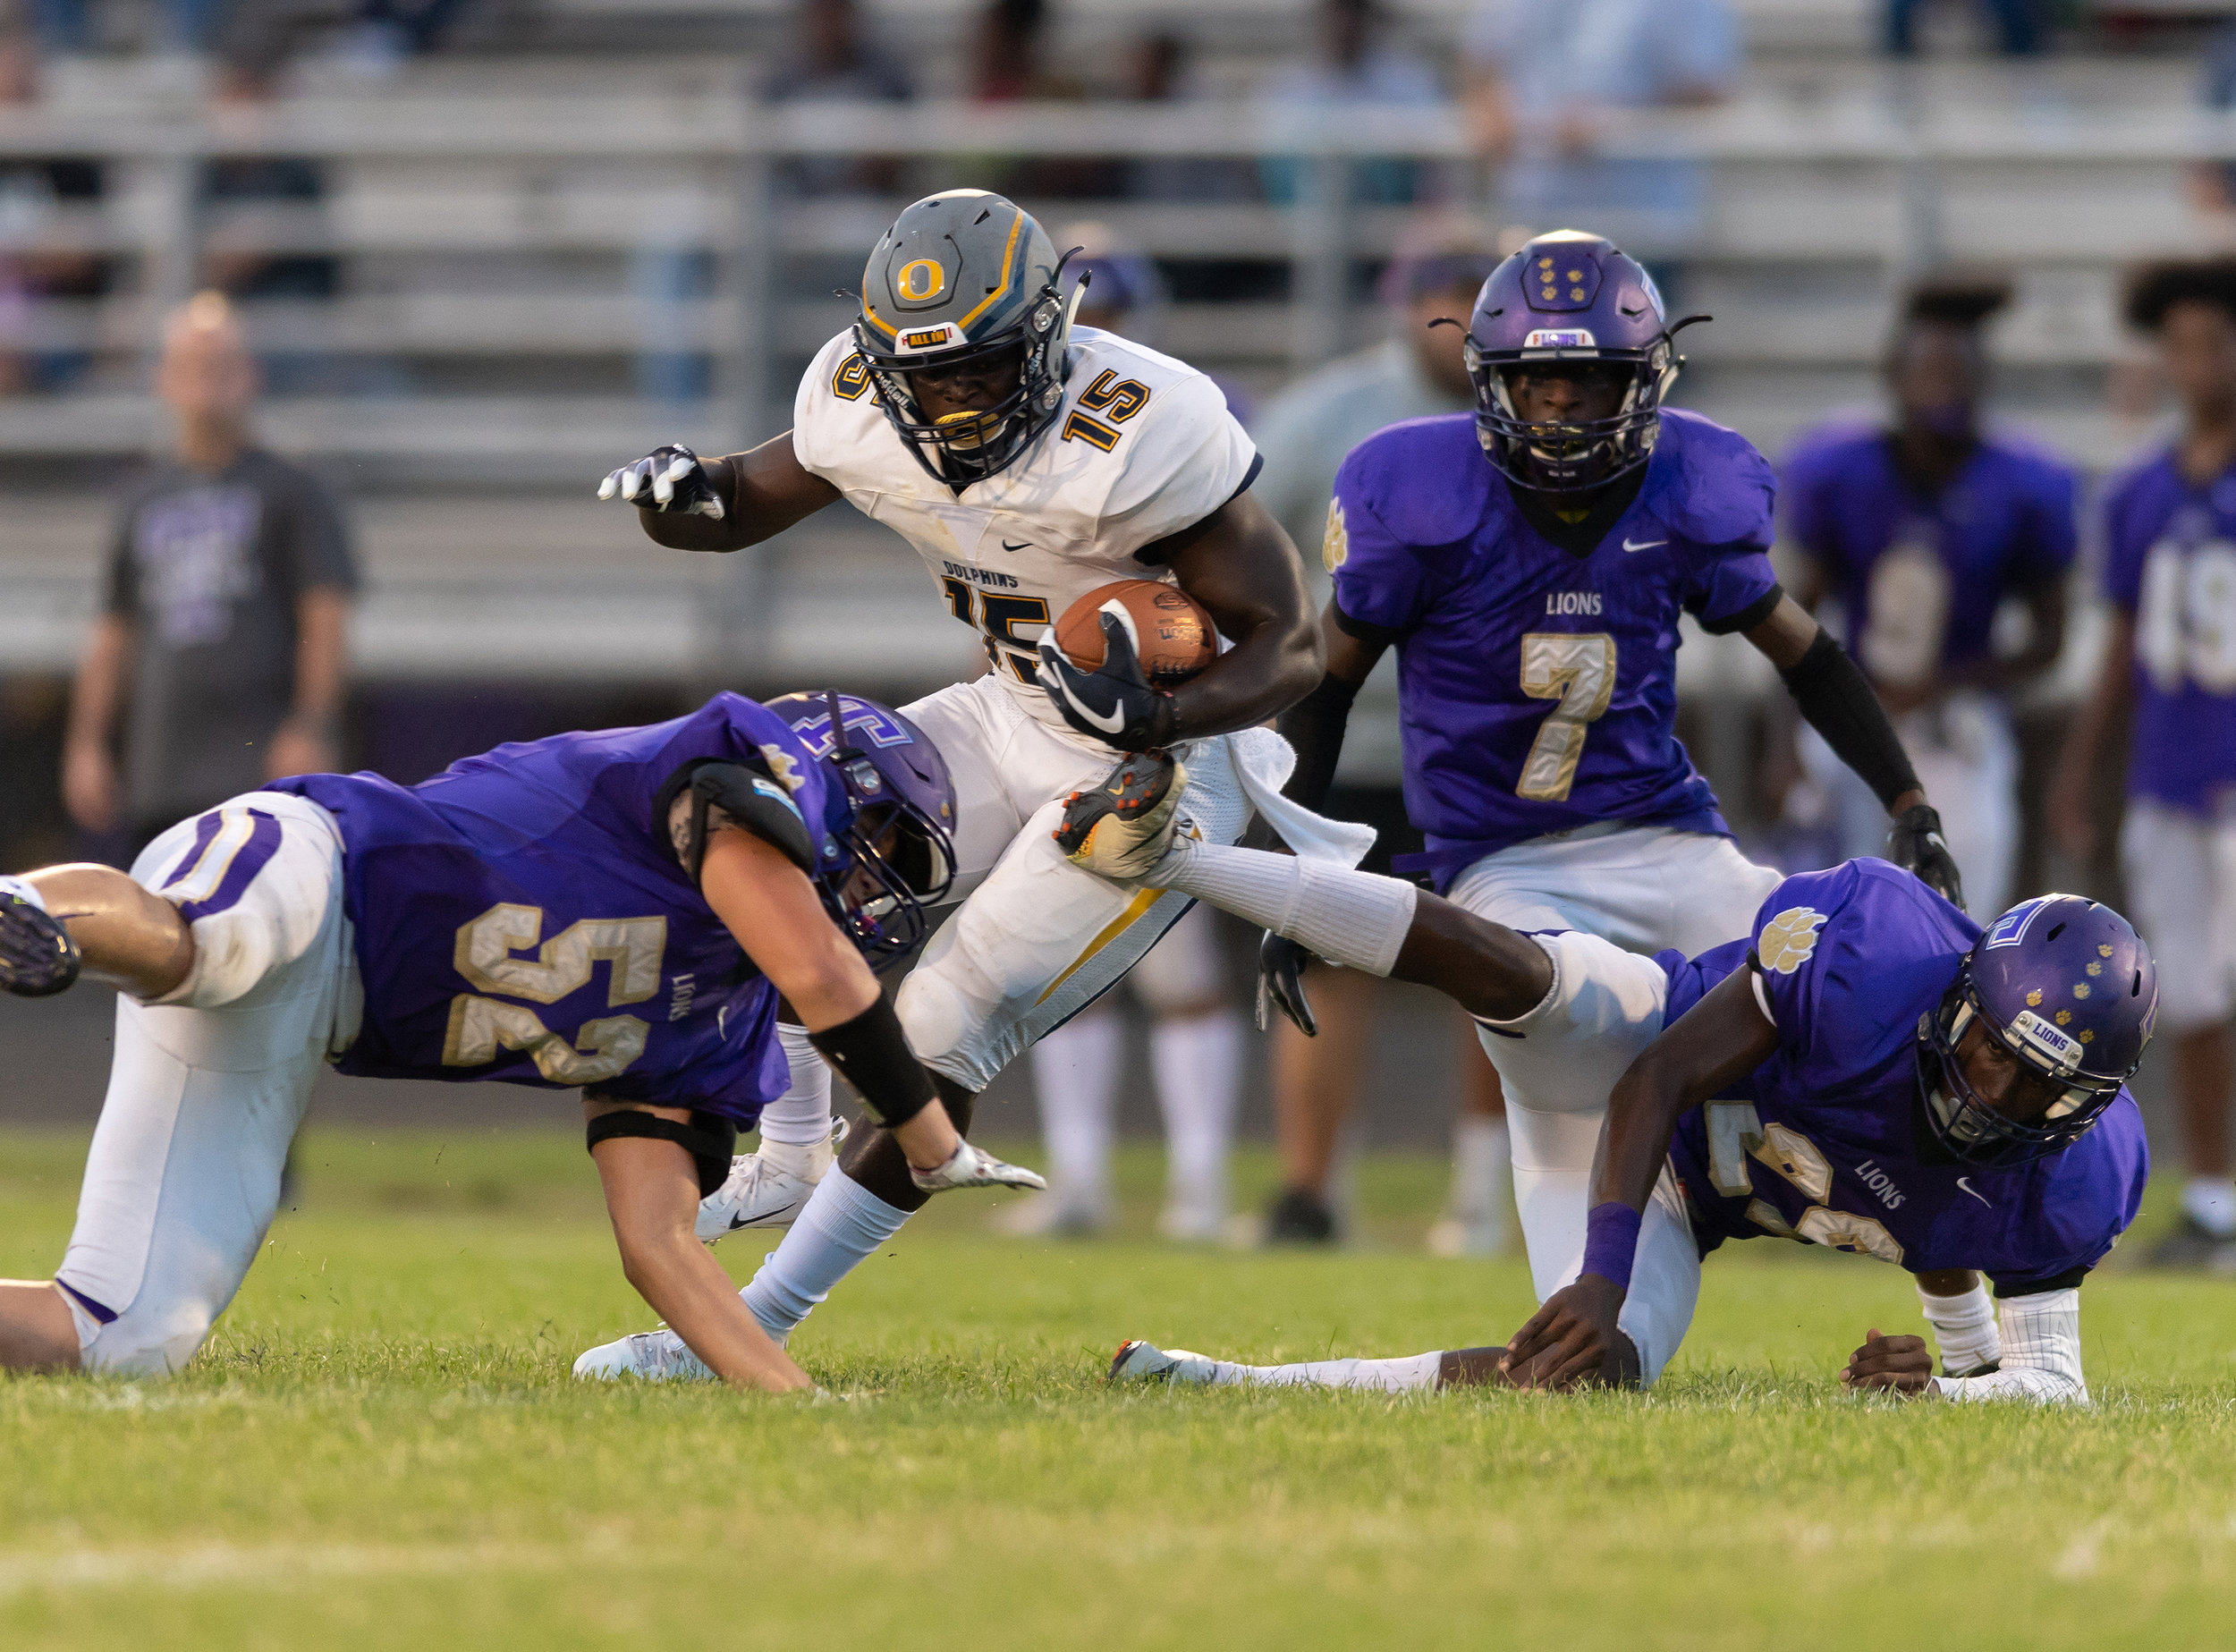 Game action from High School Football Ocean Lakes vs Tallwood held on Friday, September 07,2018 at Tallwood High School in Virginia Beach.